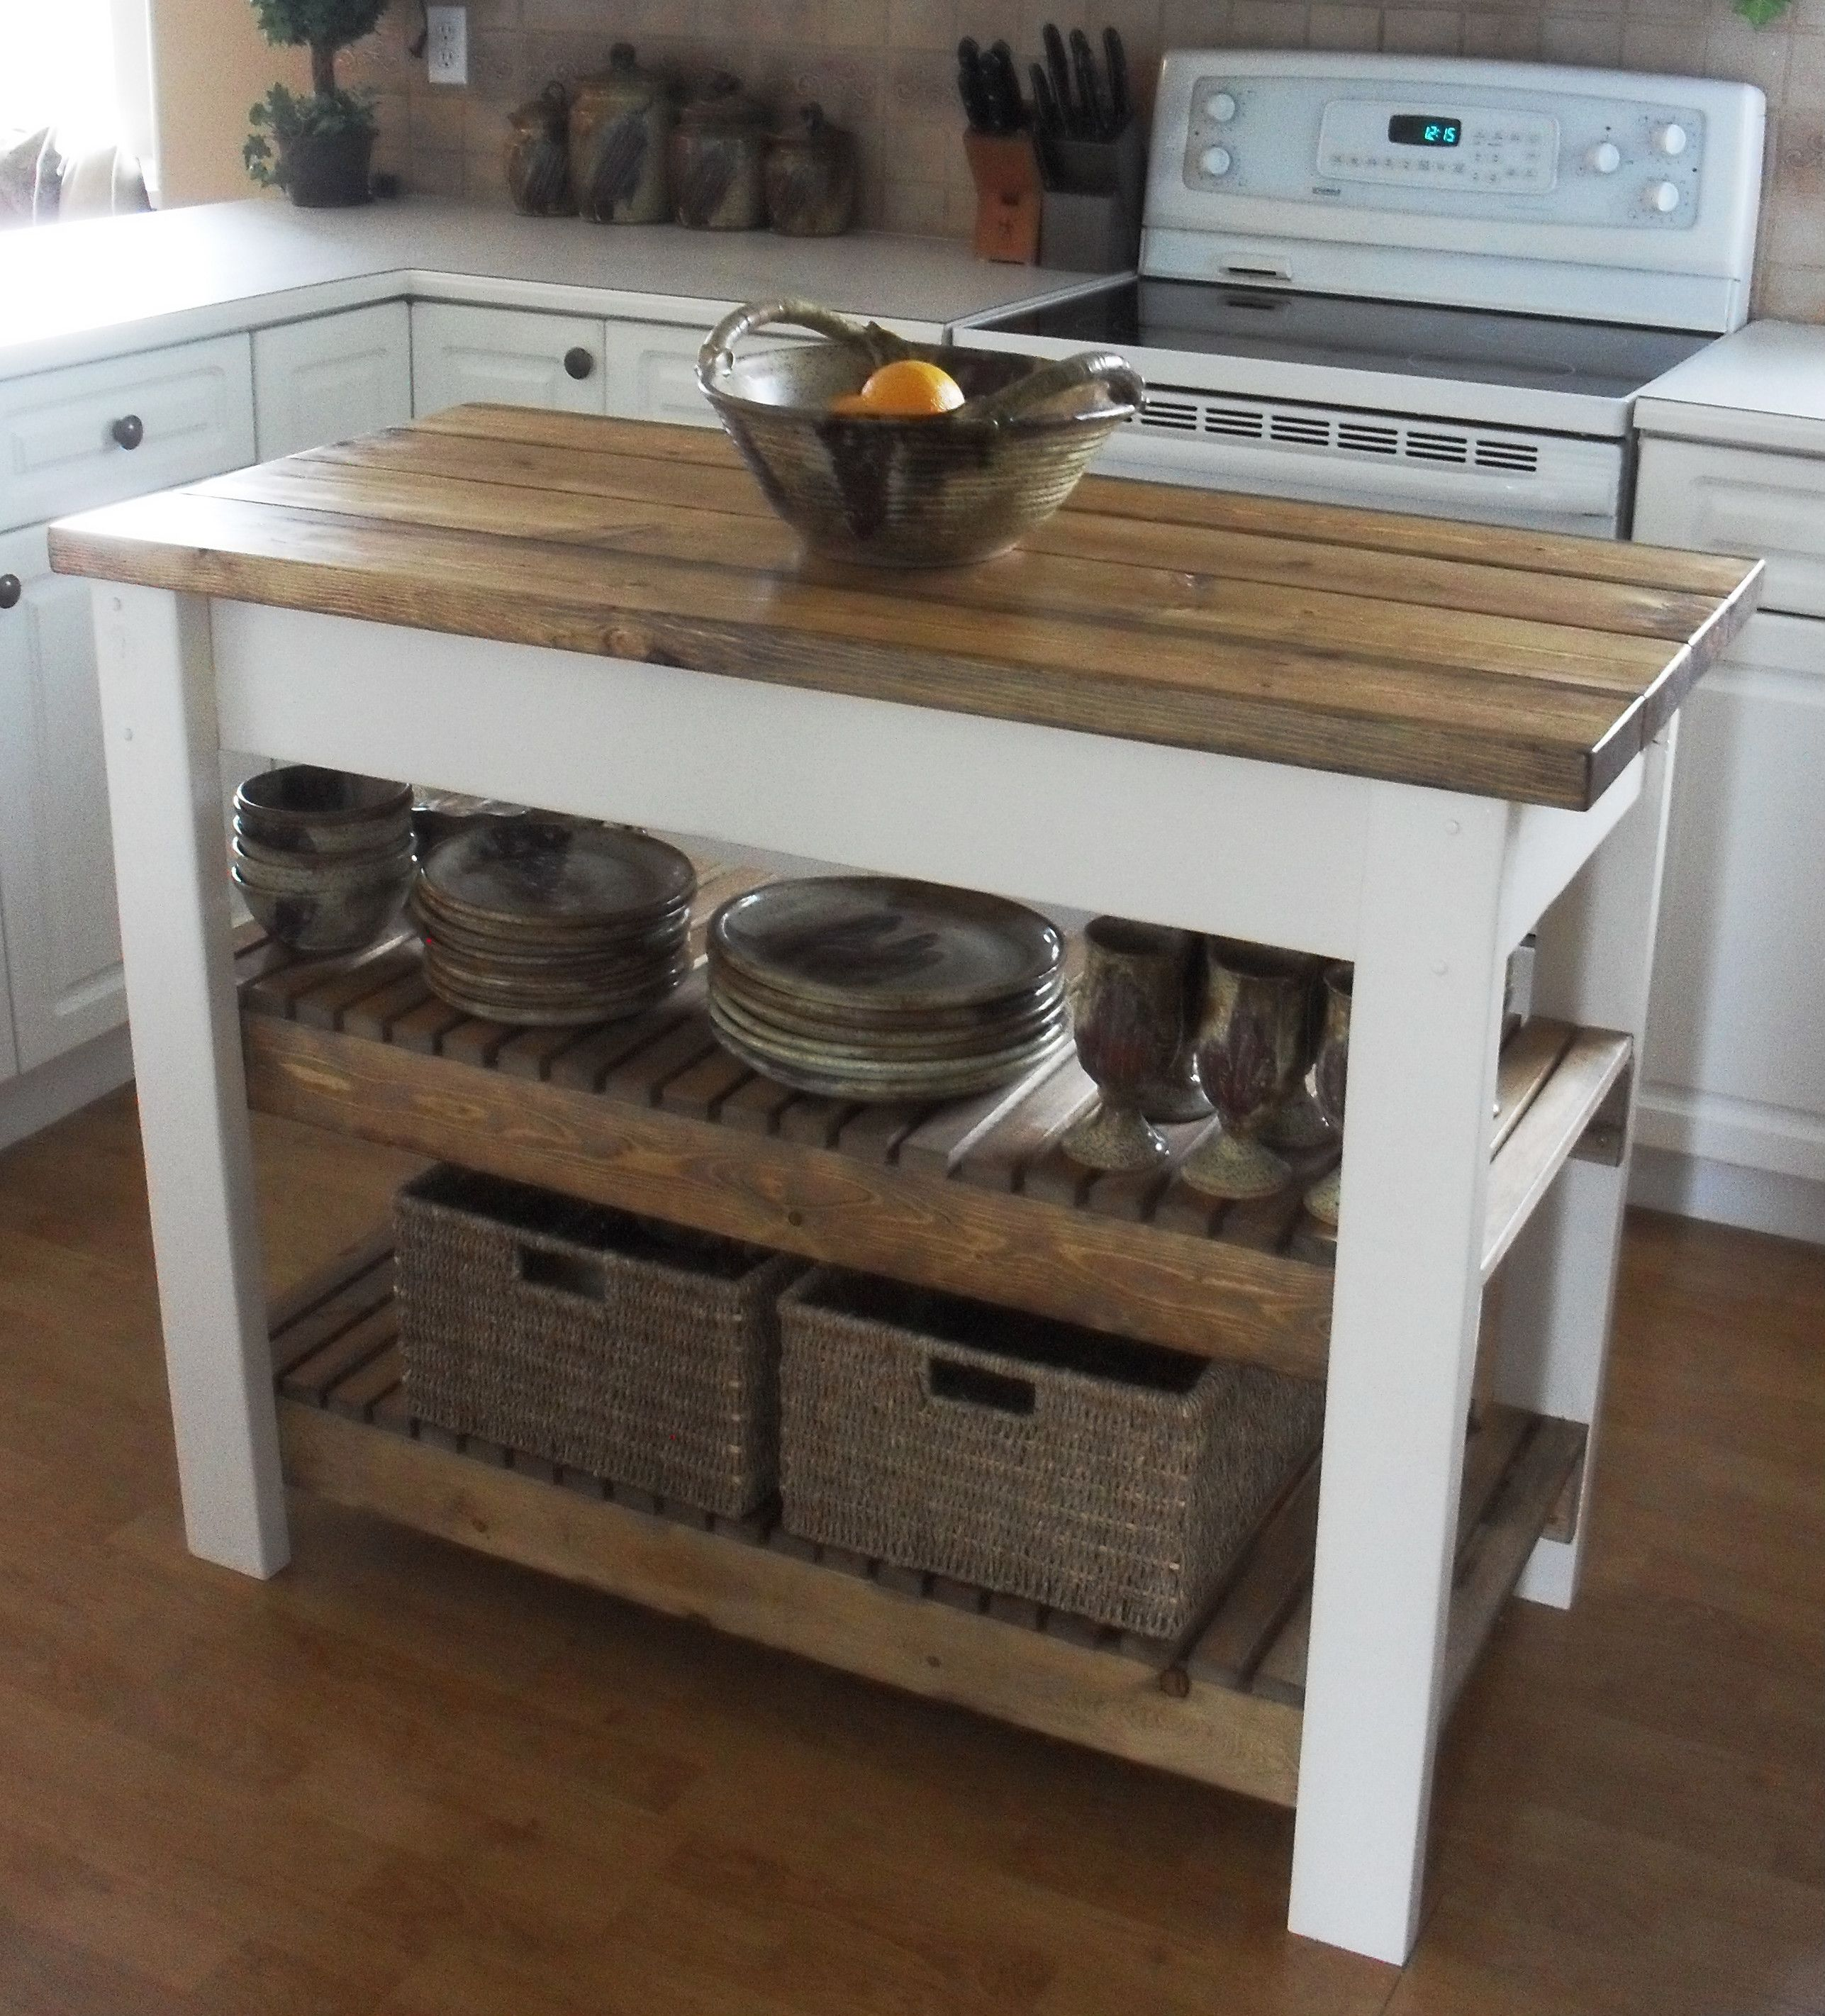 Build kitchen island table - 15 Wonderful Diy Ideas To Upgrade The Kitchen10 White Kitchen Islandkitchen